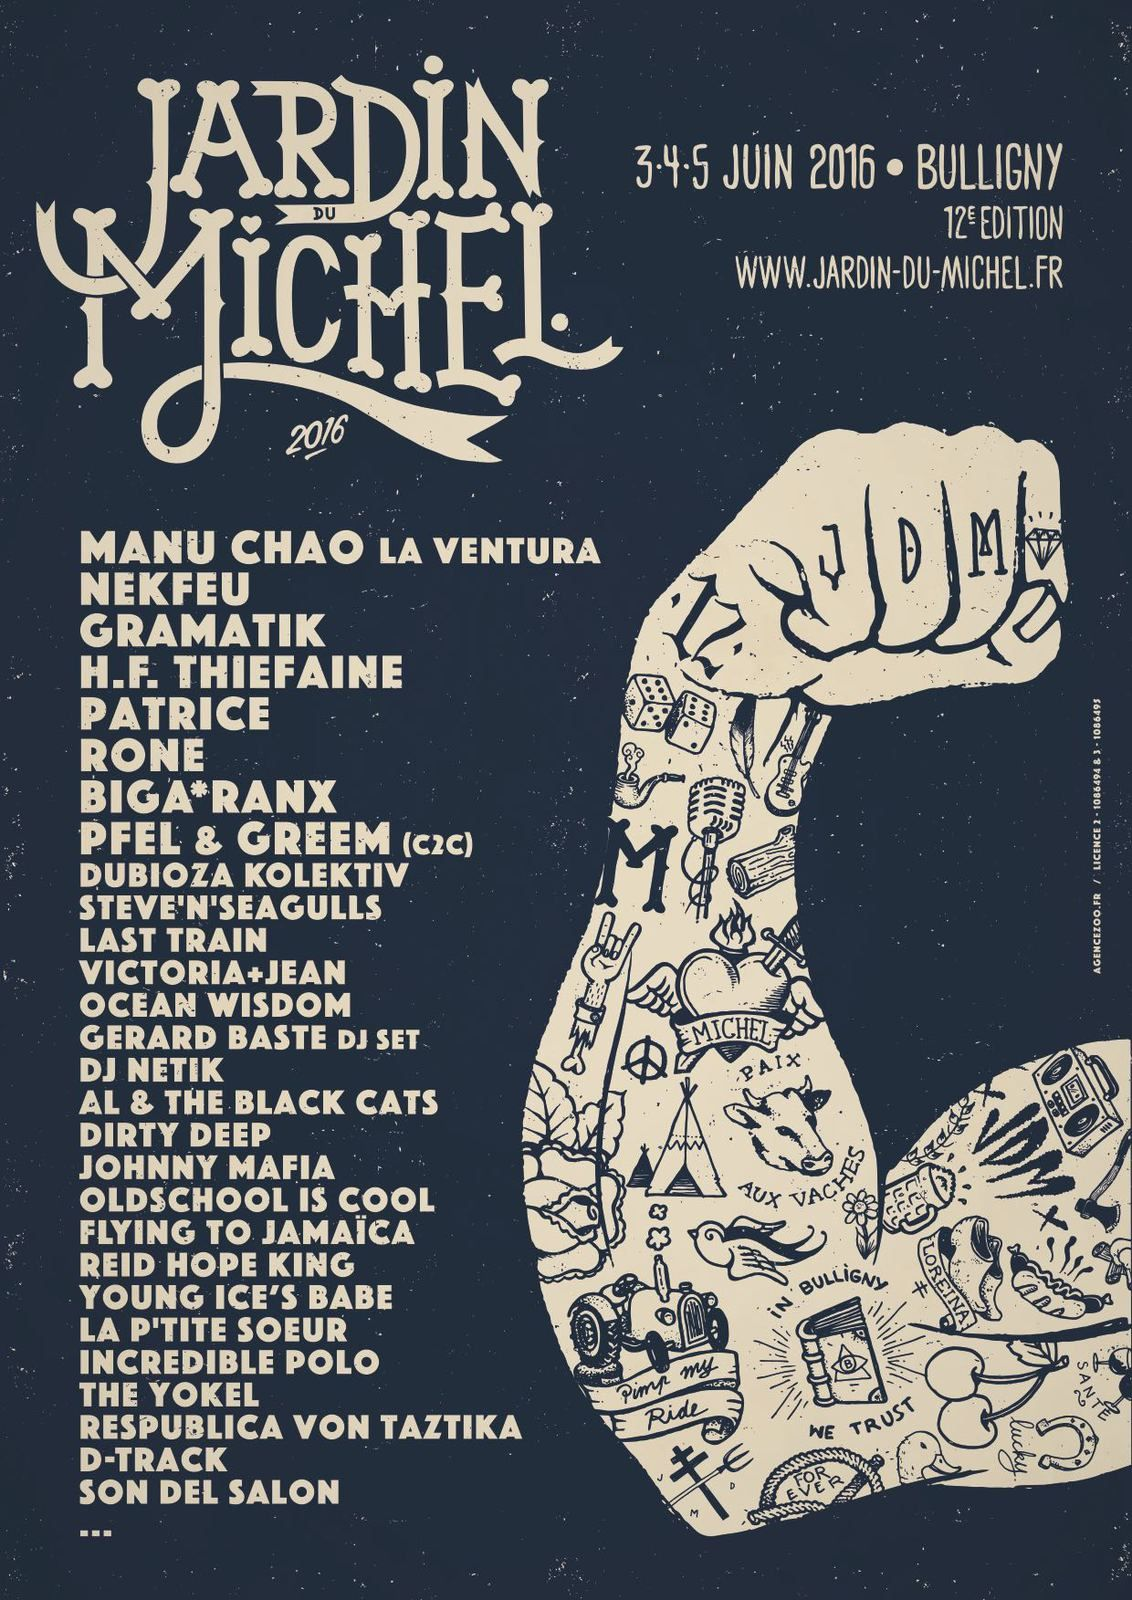 Jardin du michel 2016 kaput brain webzine for Jardin du michel 2016 programmation